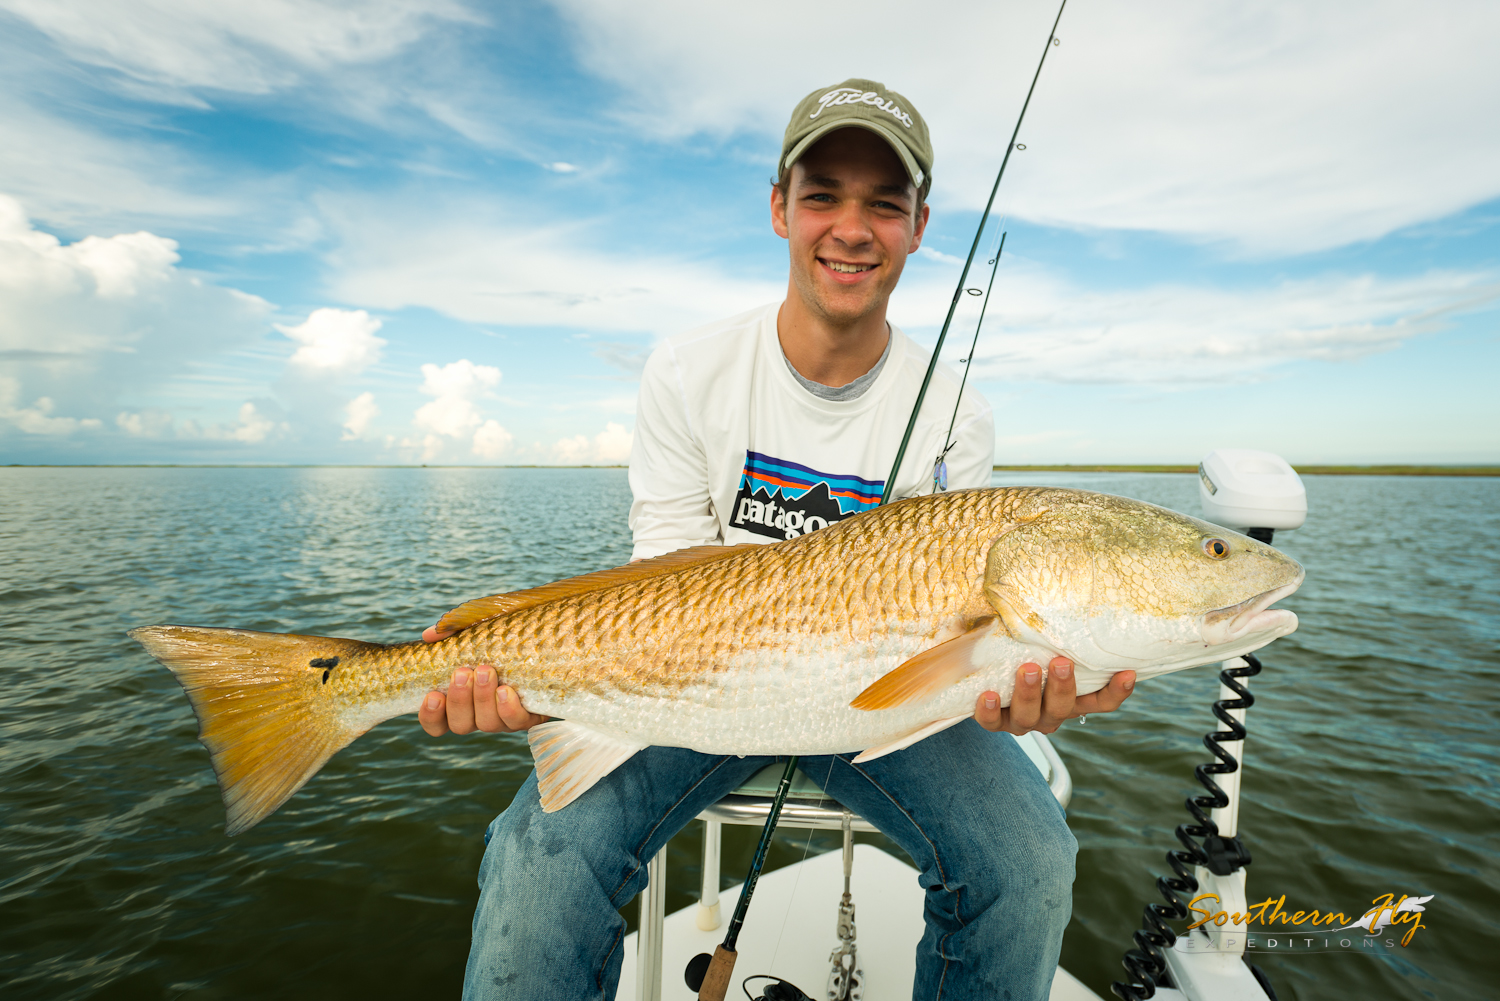 New Orleans fly fishing and light tackle guide southern fly expeditions and captain brandon keck